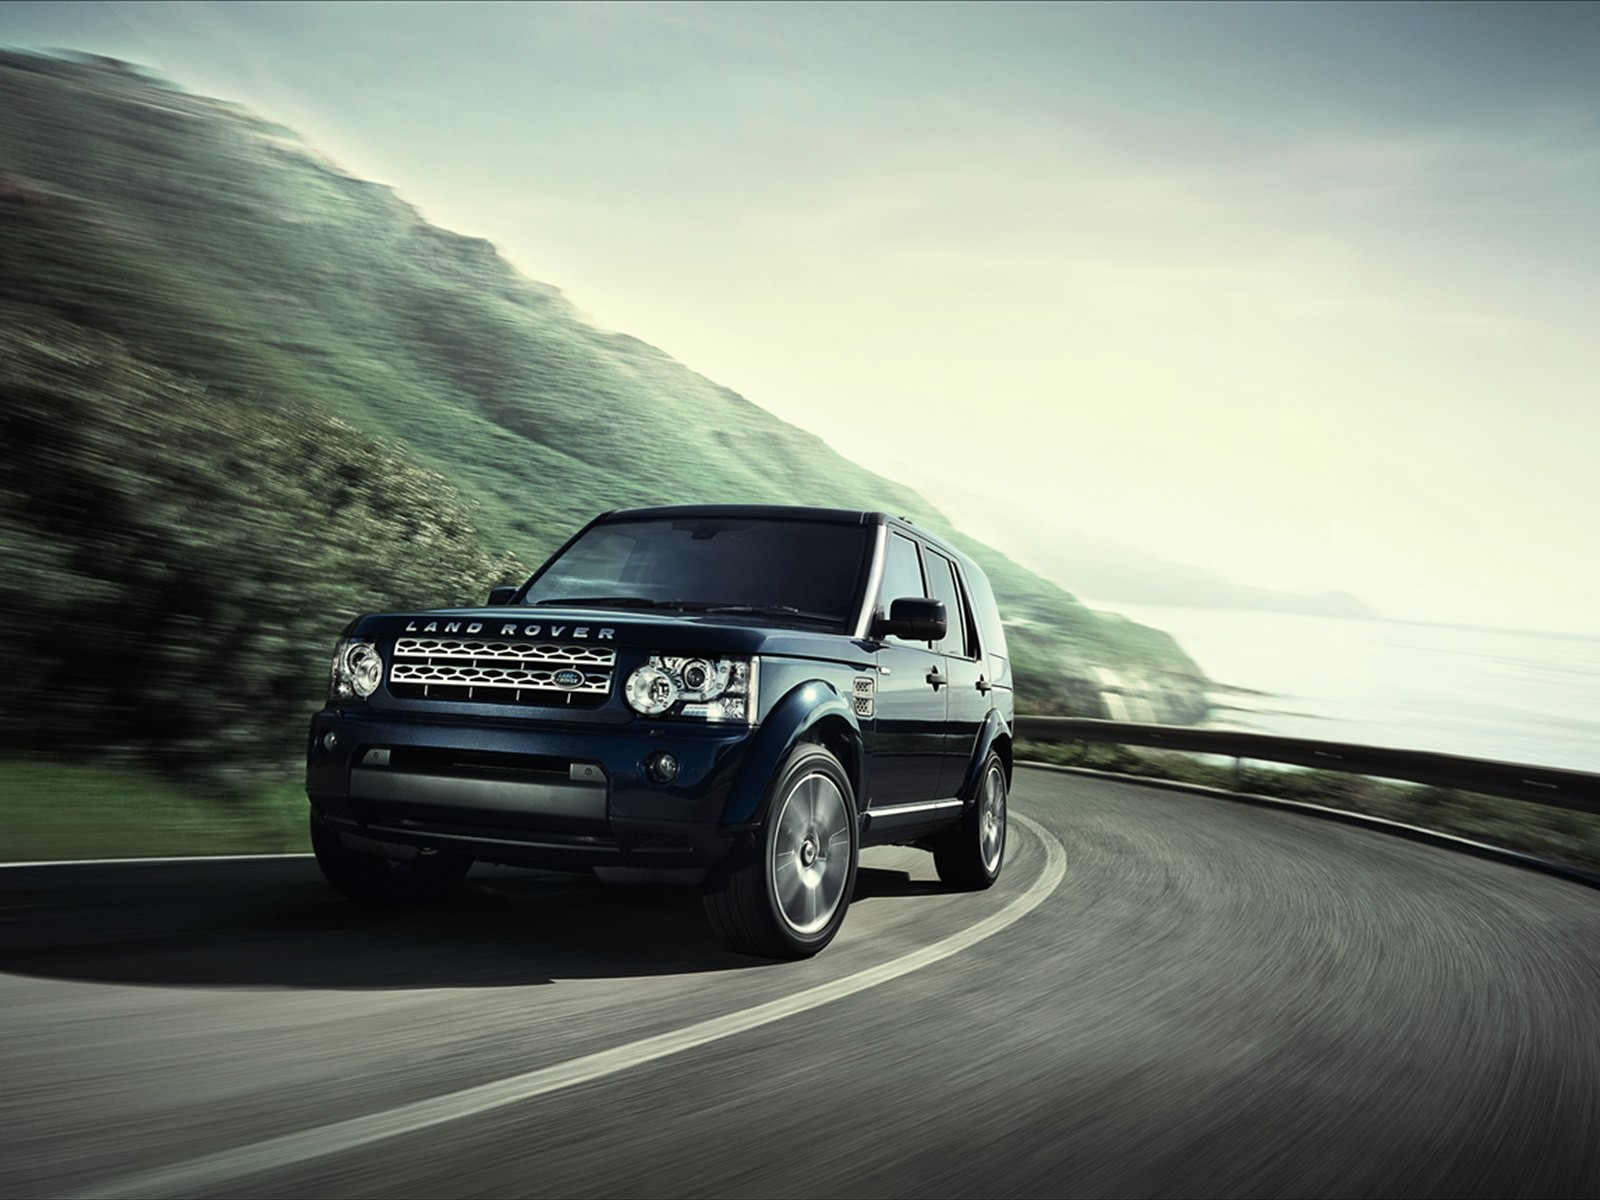 Discovery Sport Wallpaper Android: Land Rover Discovery 4 Wallpapers